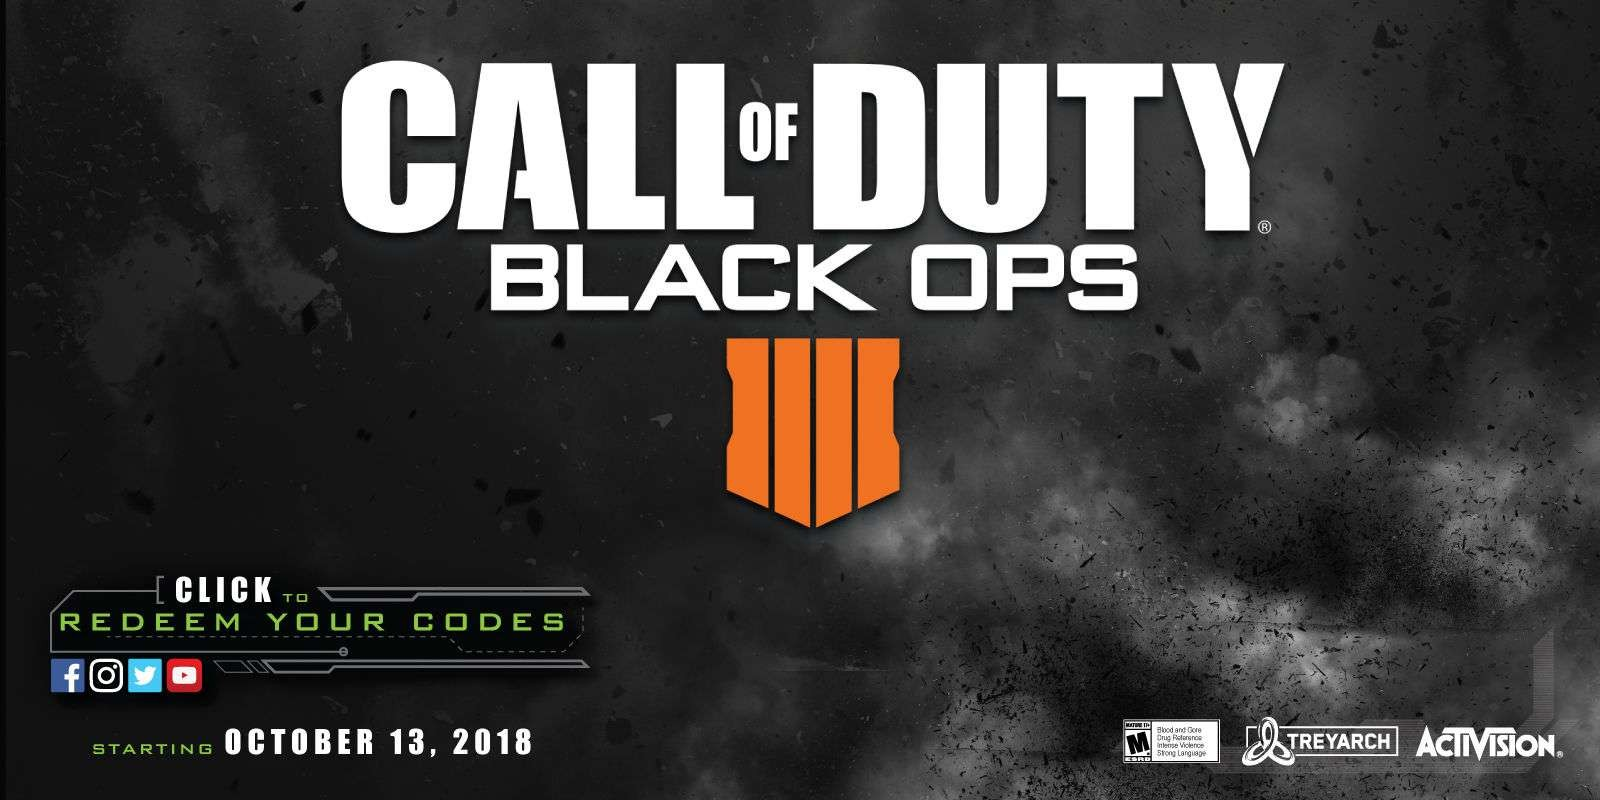 Call Of Duty Black Ops 4 Code Redemption